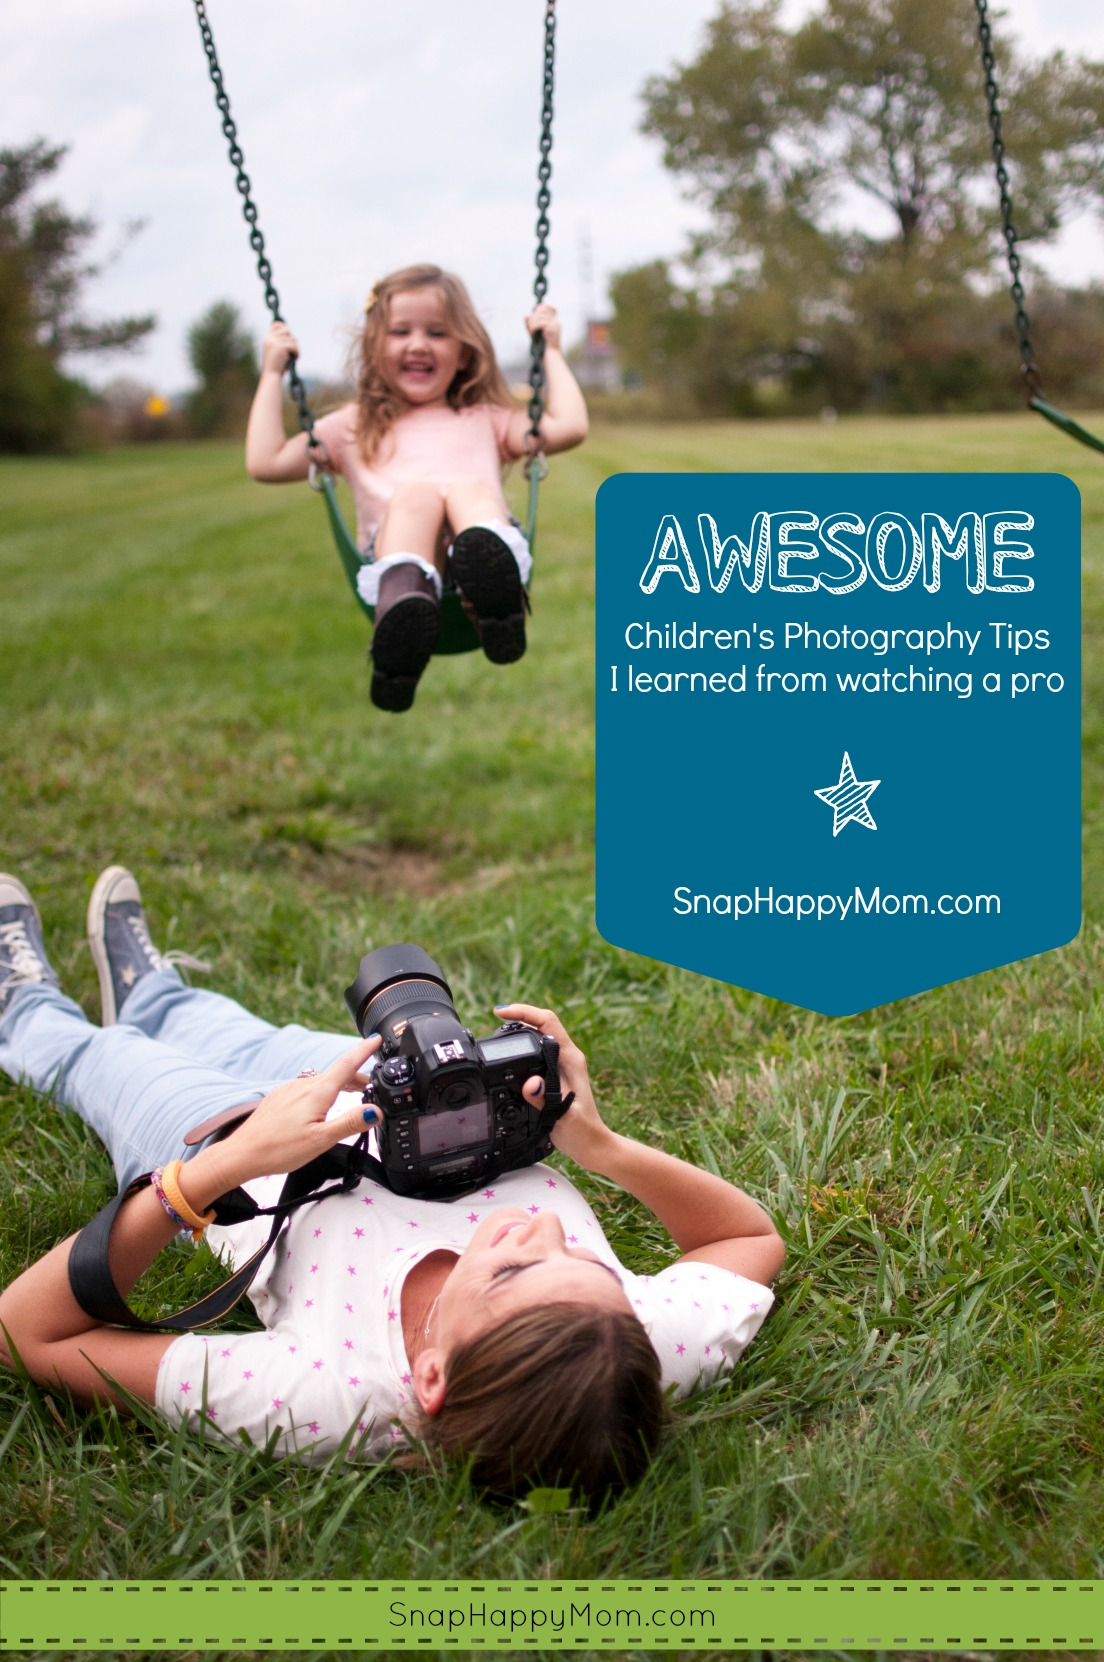 Awesome Photography Tips I learned from watchign a Pro - SnapHappyMom.com